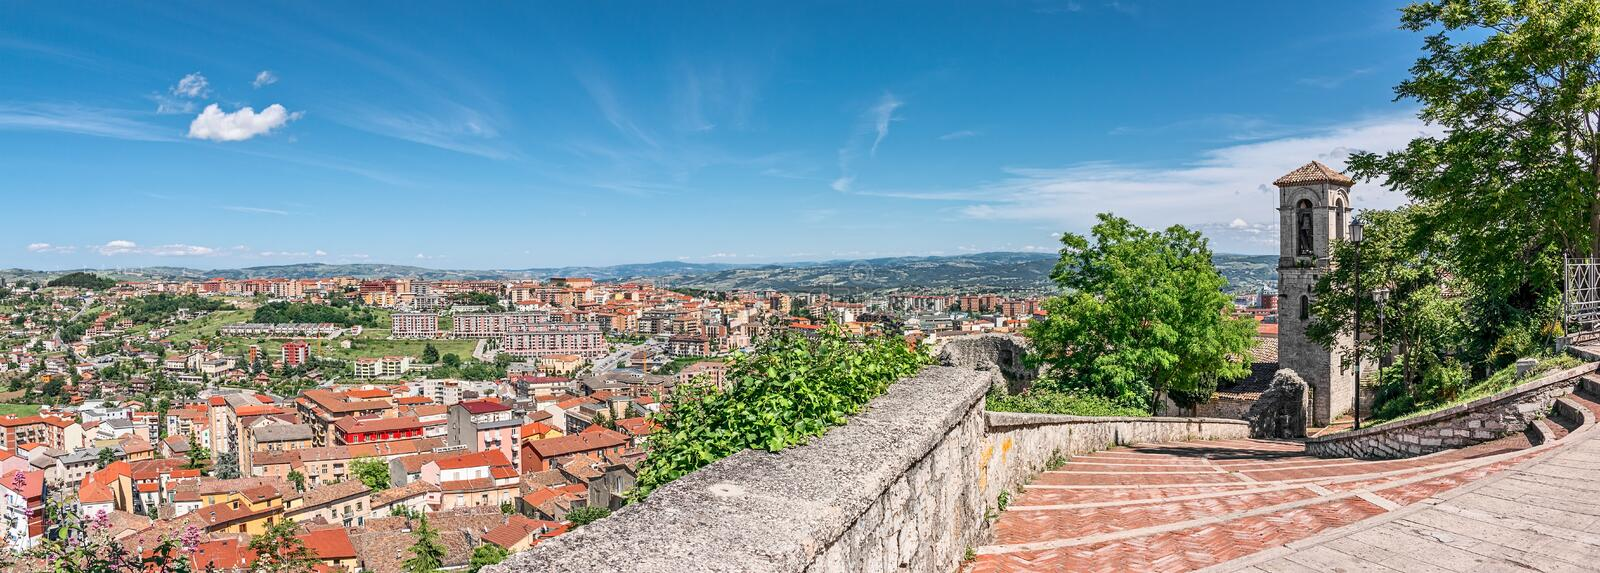 Panorama de Campobasso images stock